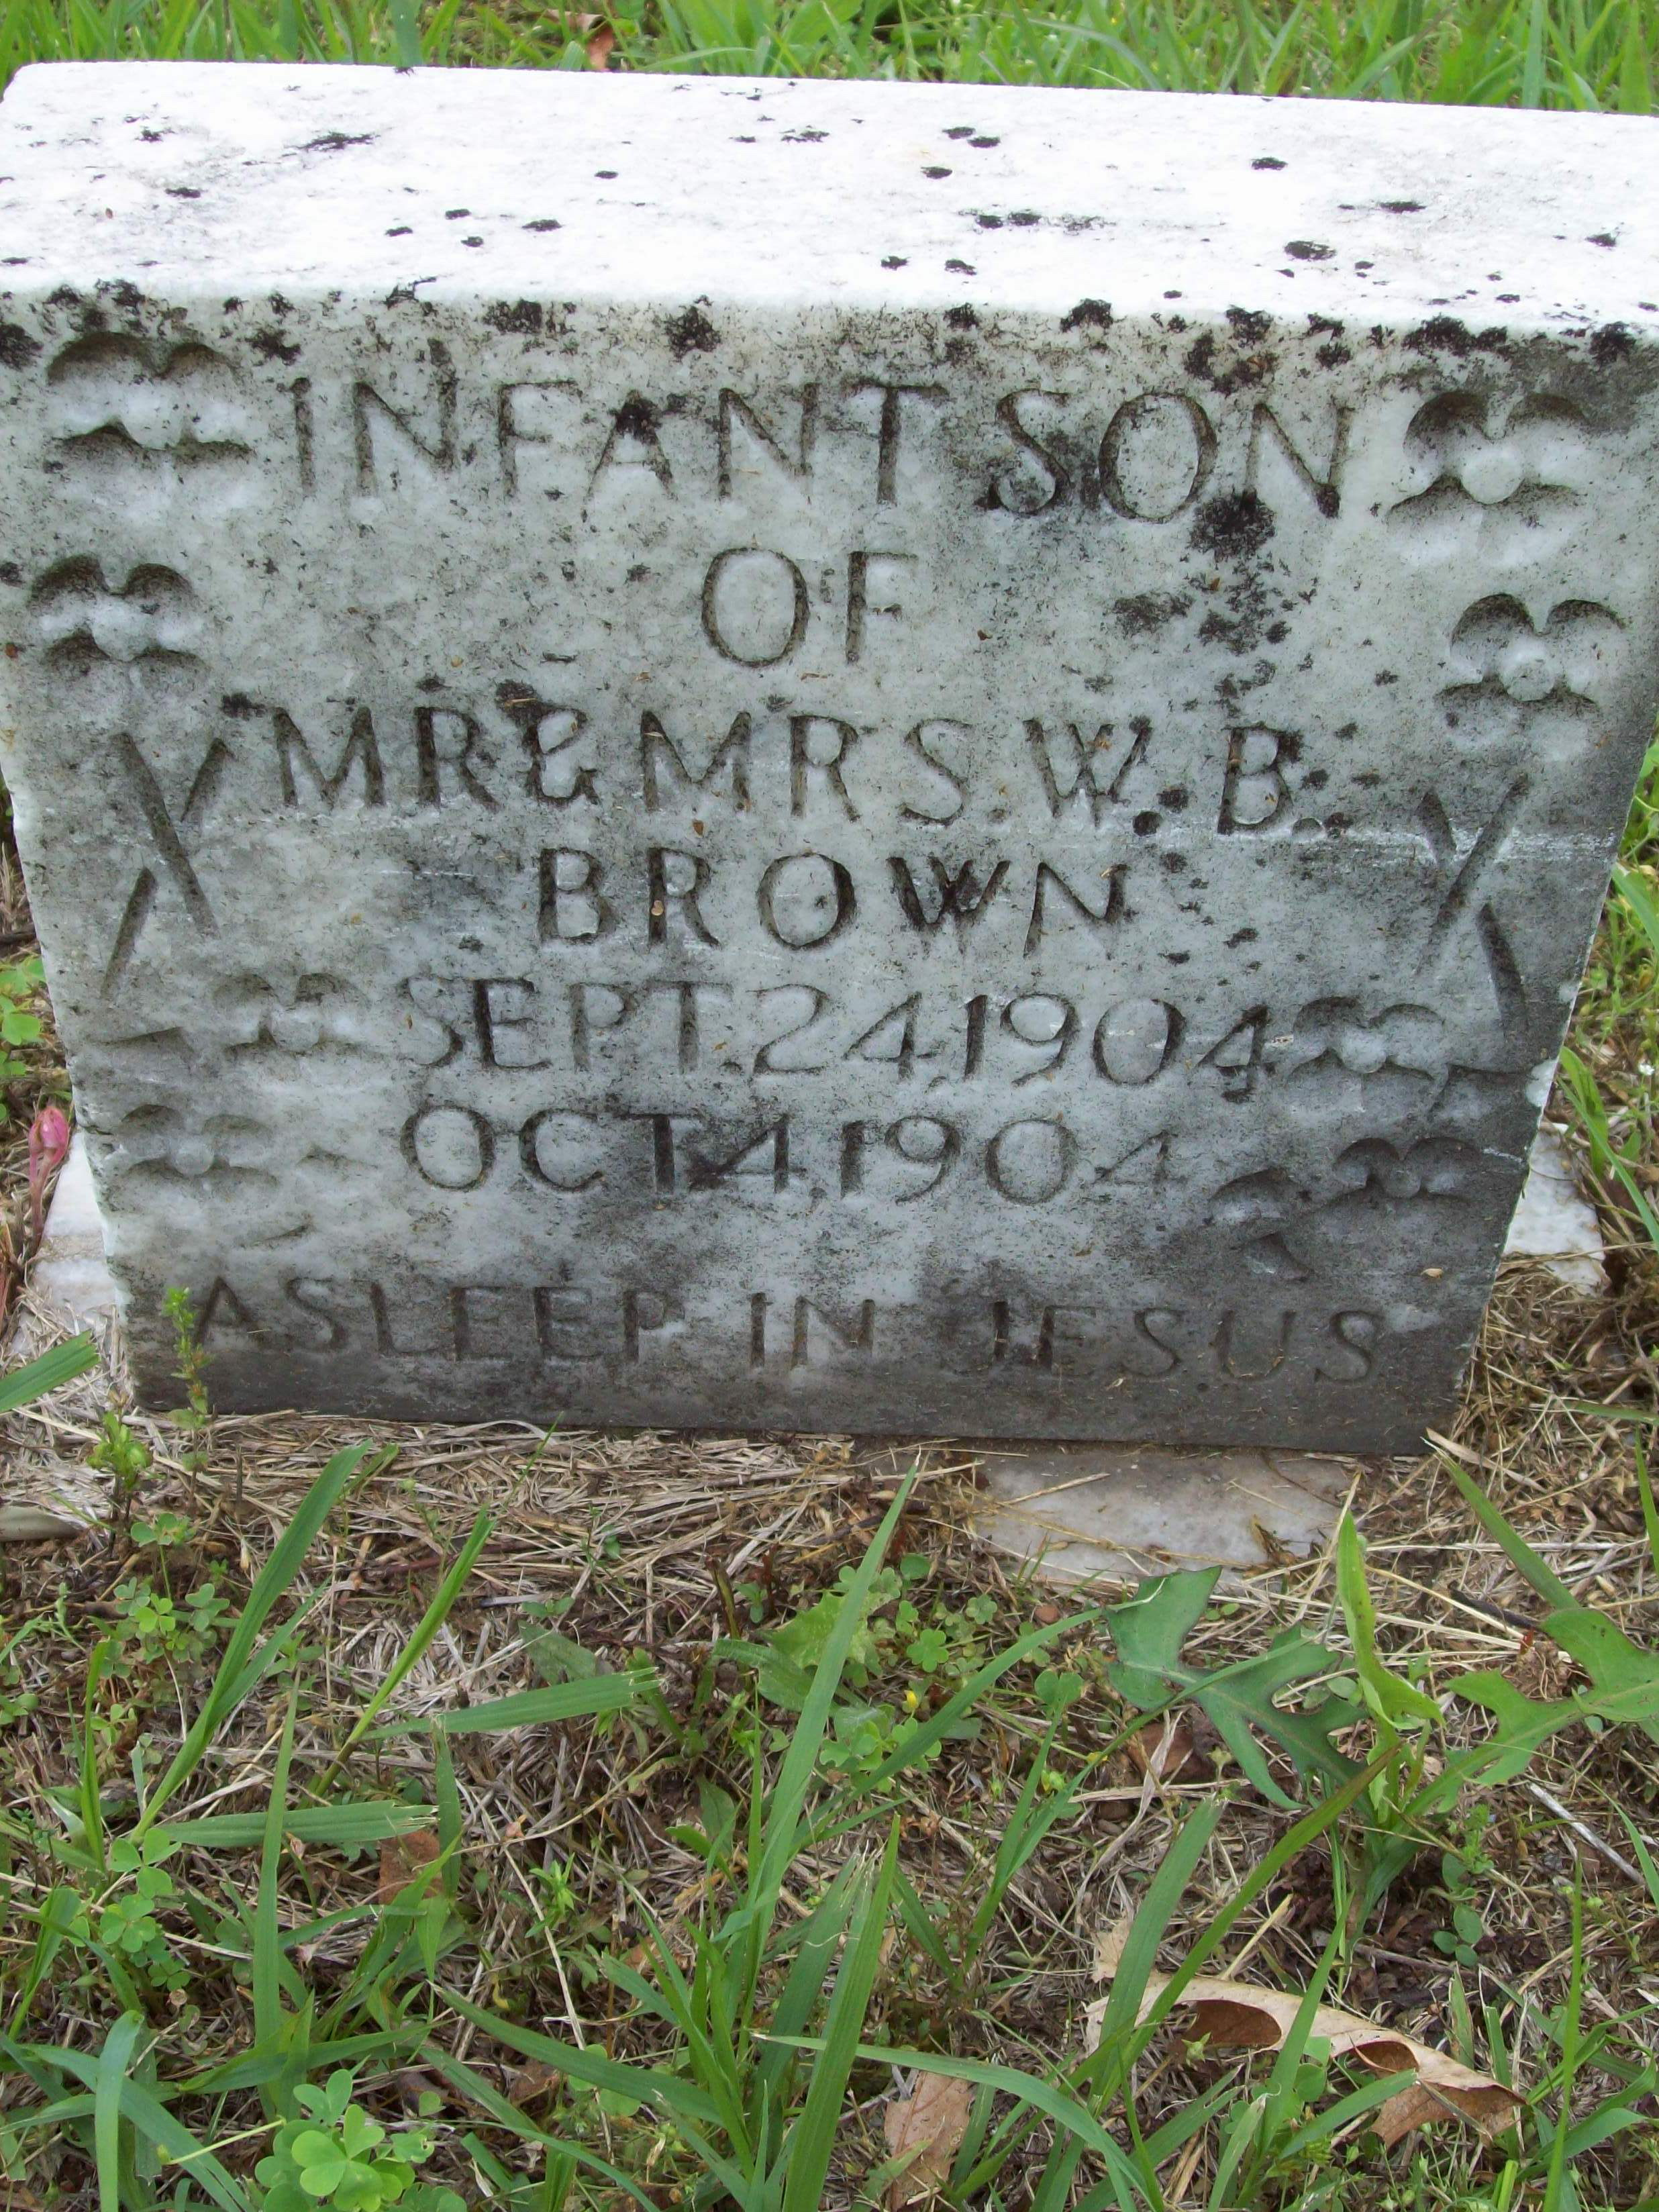 Infant son Brown